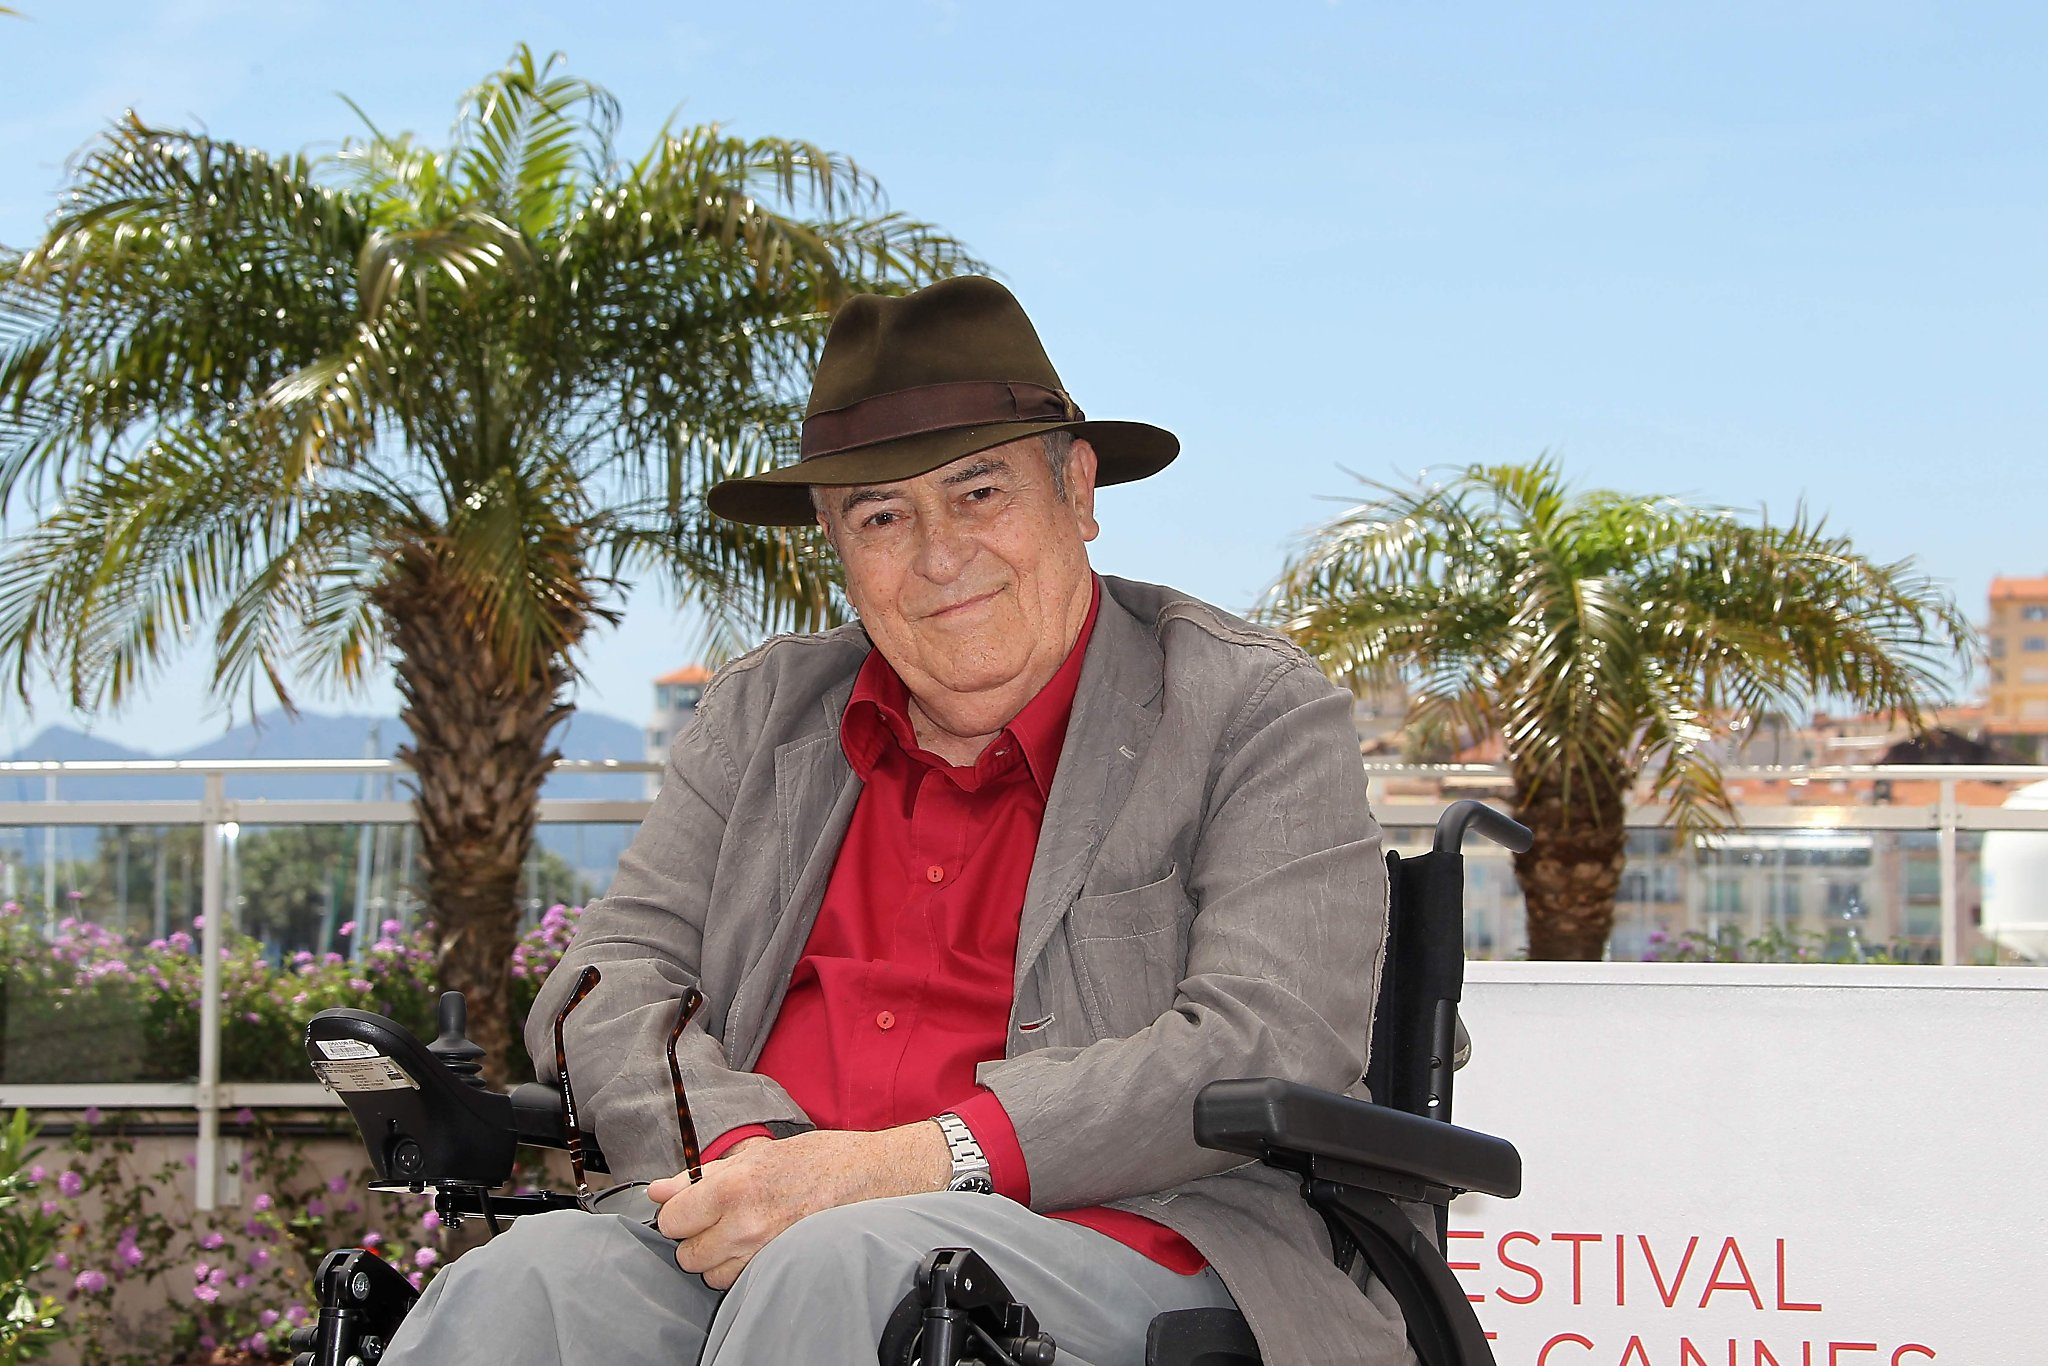 Bernardo Bertolucci Acclaimed Director Of Last Tango In